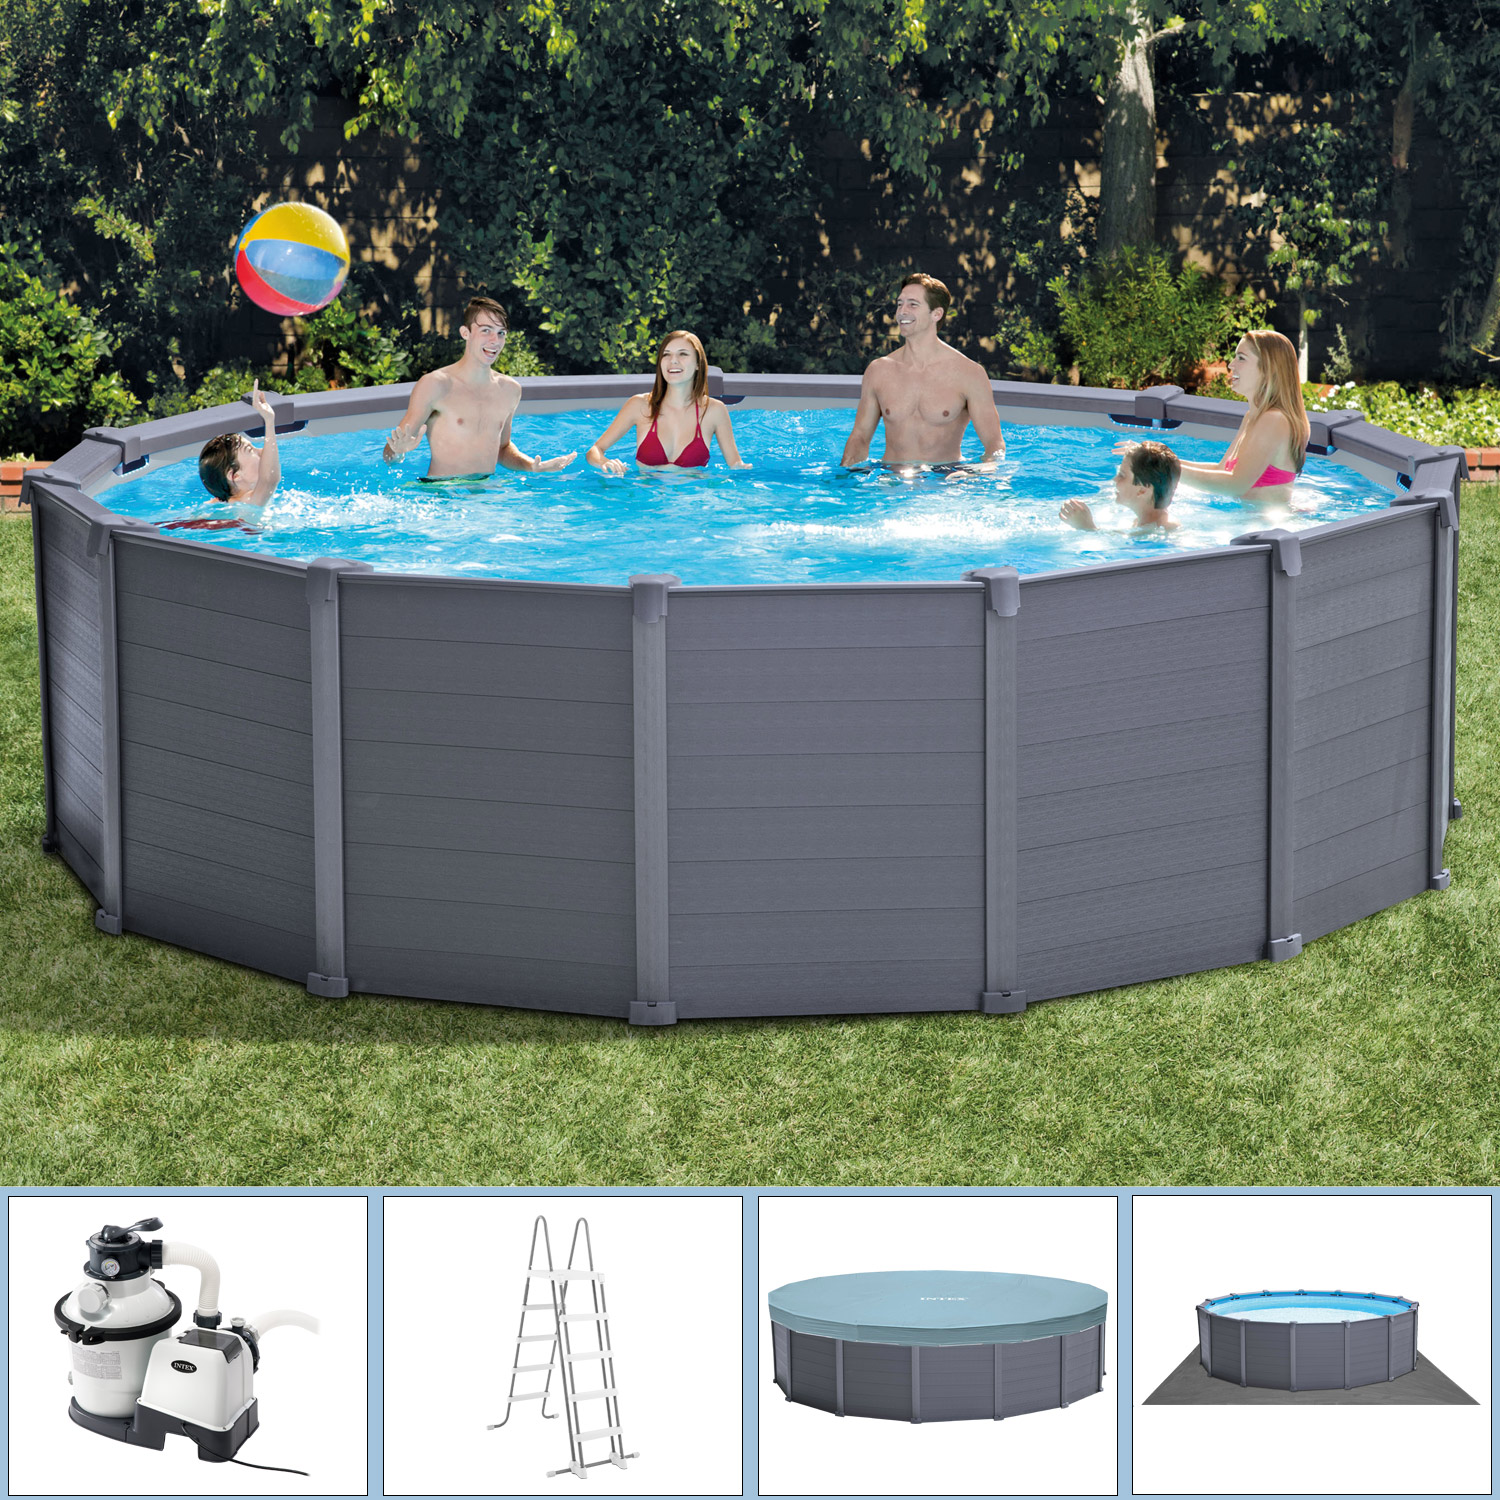 Pool Filteranlage Steinbach Intex Ø 478 X 124 Cm Frame Pool Komplett Set Graphit Mit